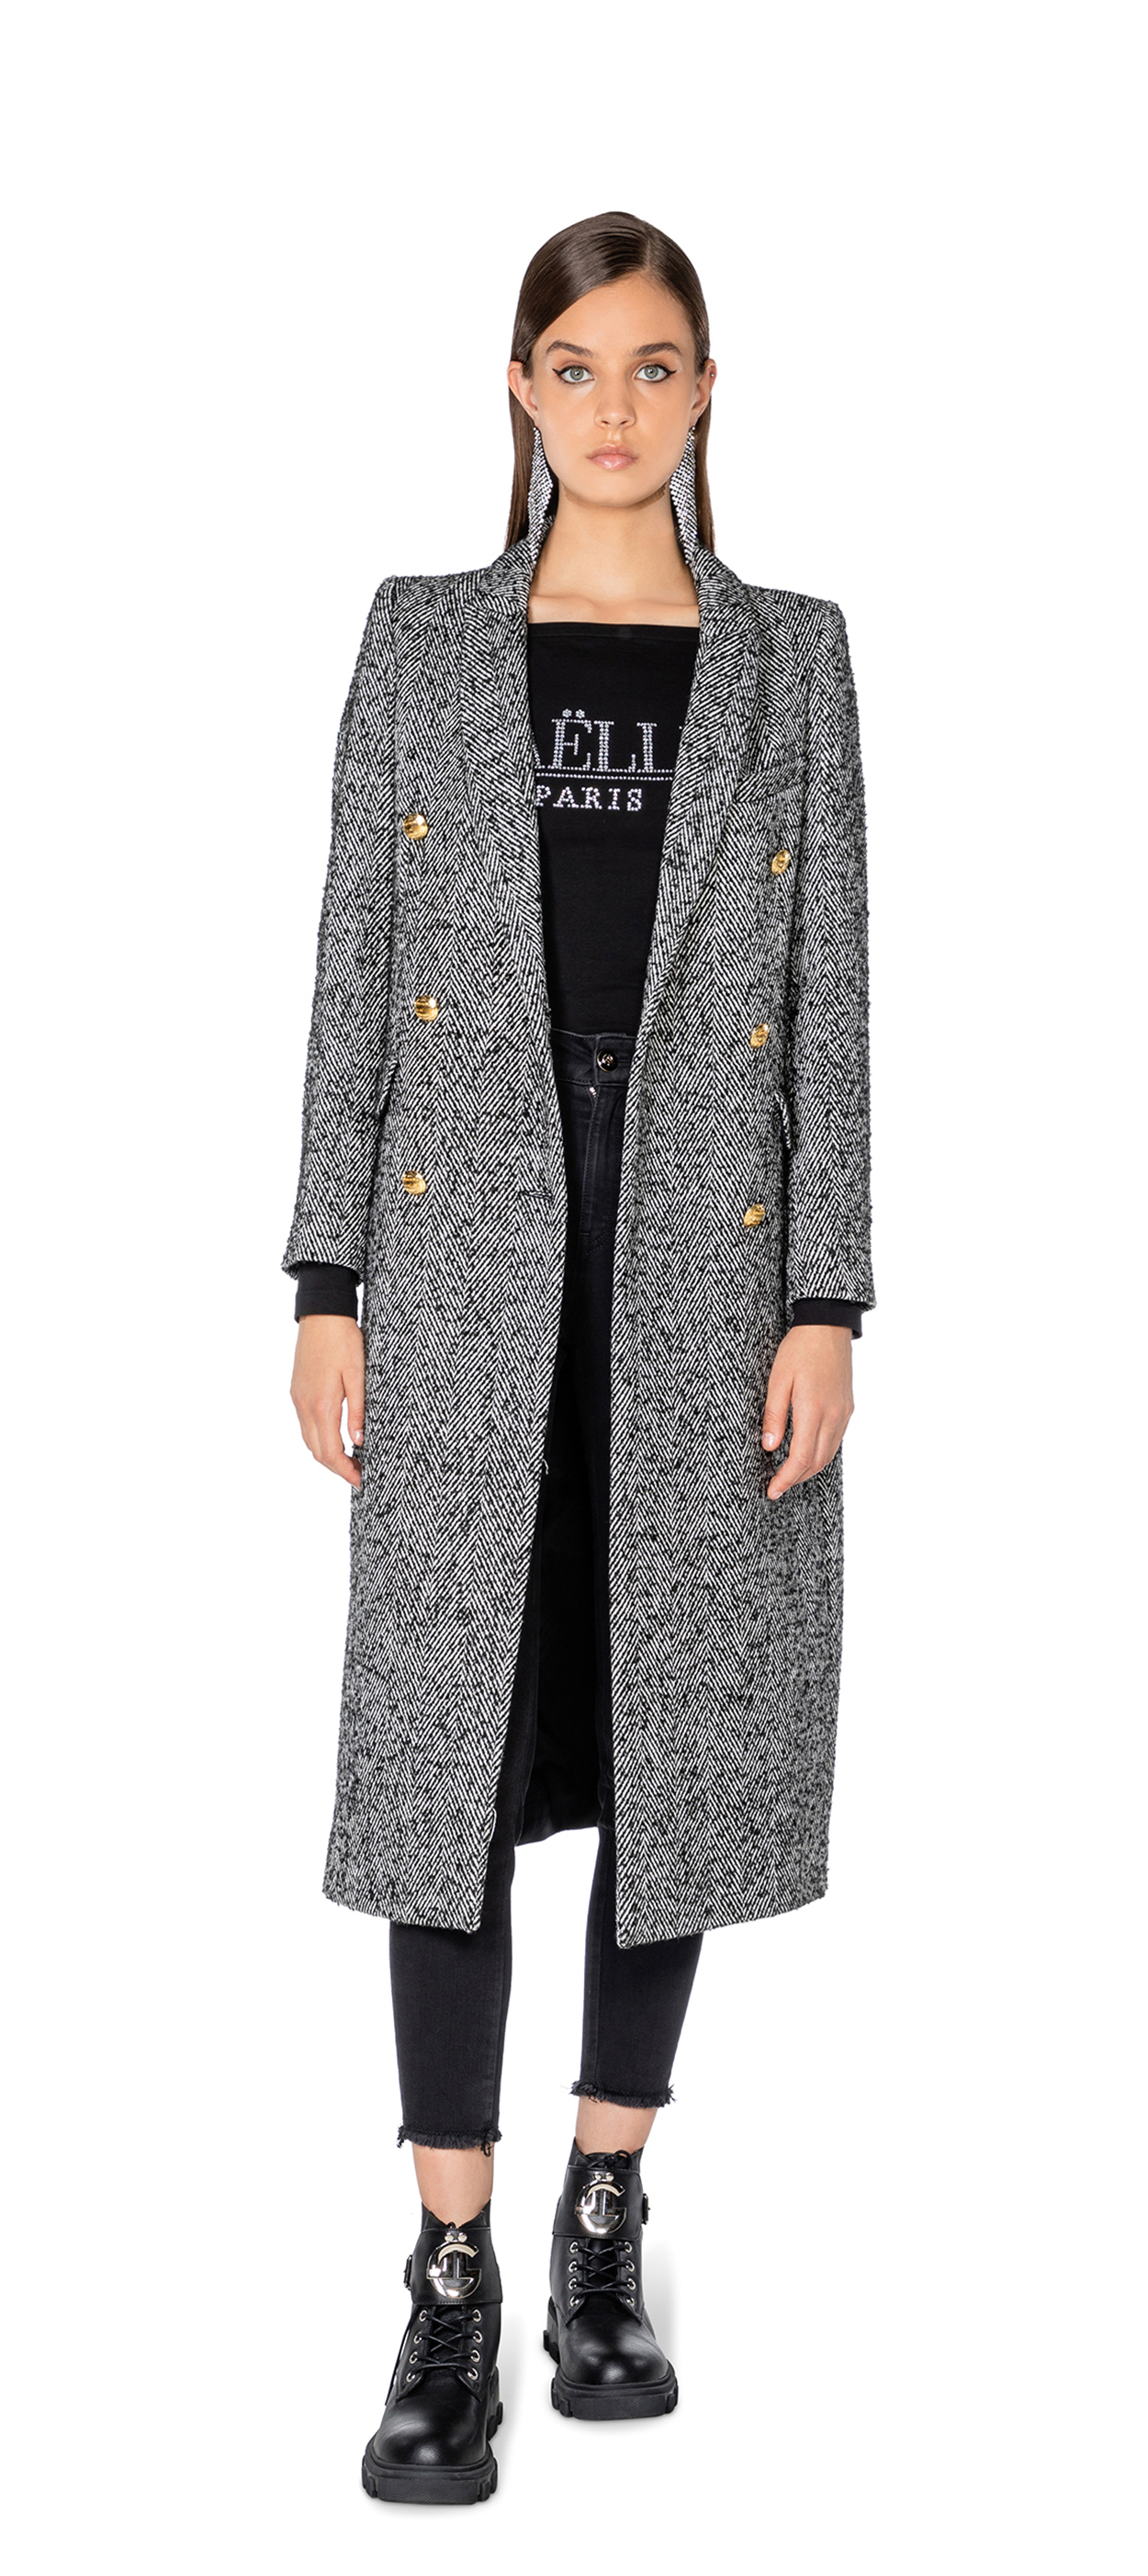 COAT - GBD7328 - GAELLE PARIS